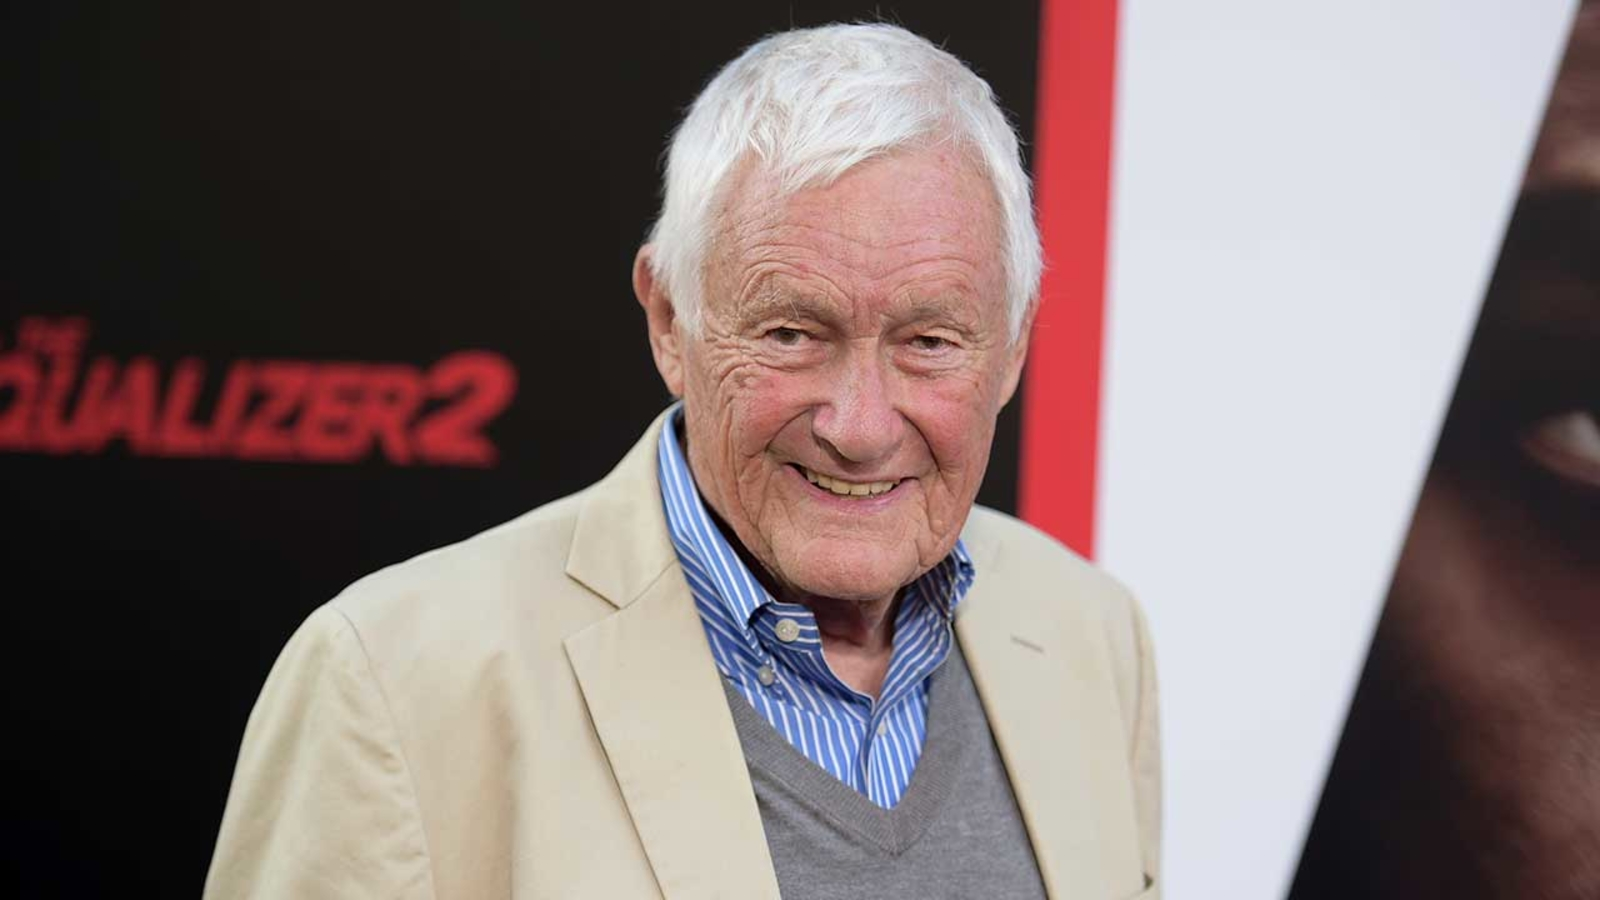 Veteran actor Orson Bean, 91, struck and killed by vehicle in Venice, California